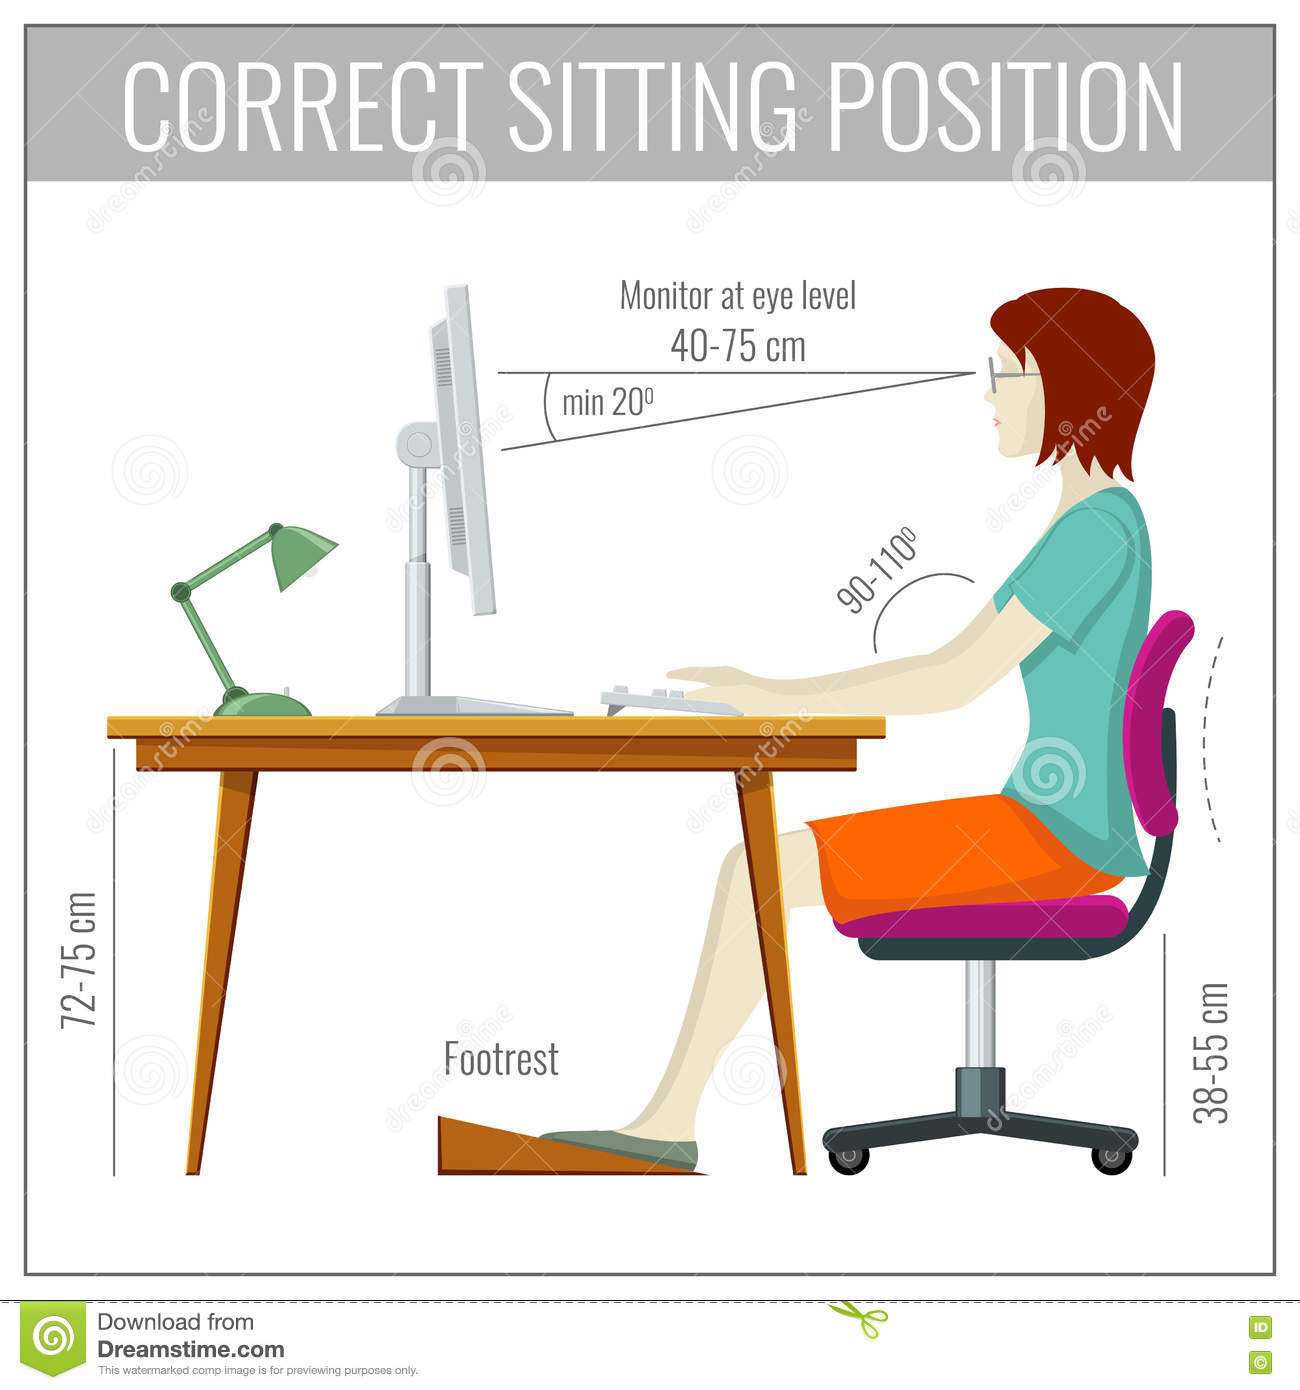 proper chair posture at computer stool cheap correct spine sitting health prevention vector concept stock - image ...